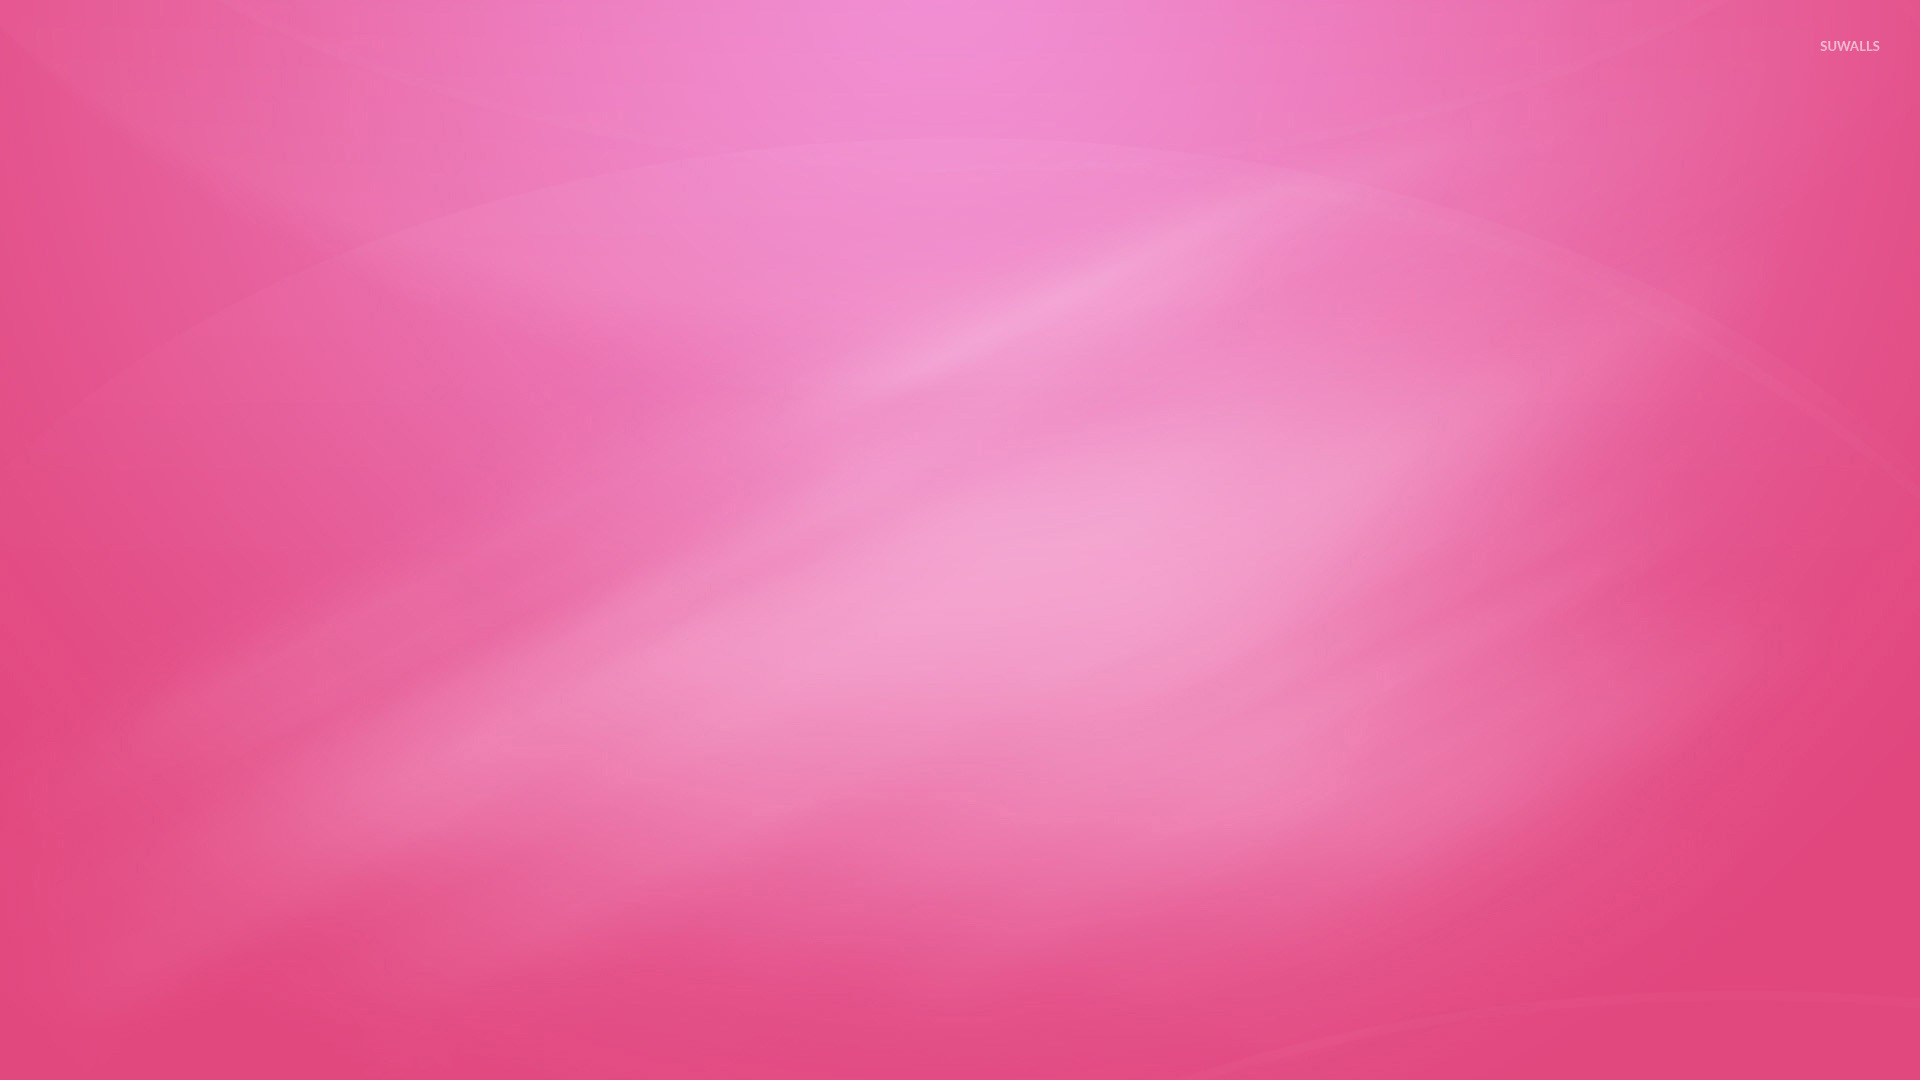 Fade white curves on pink blur wallpaper